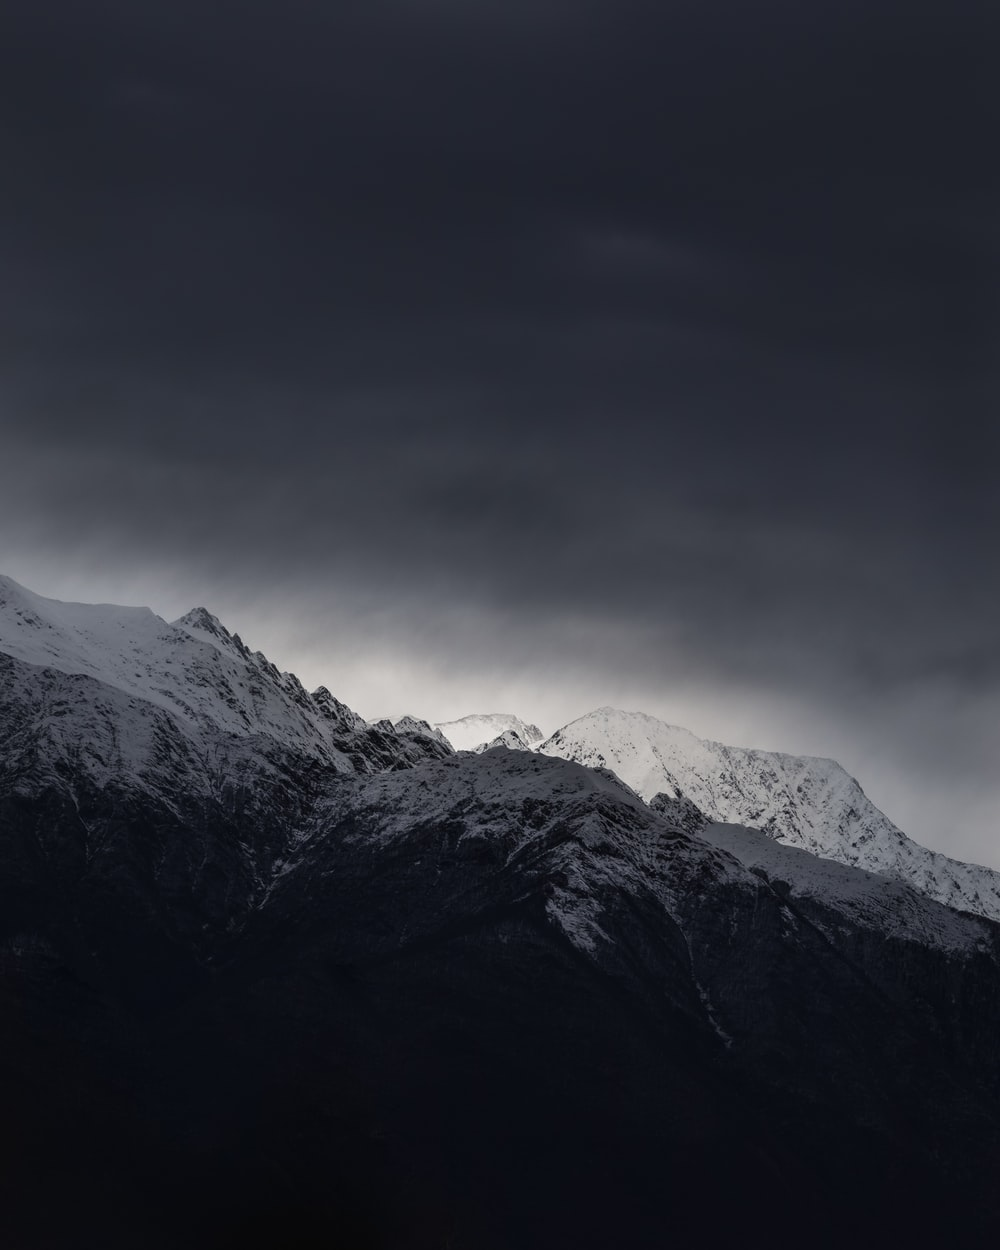 snow capped mountain under cloudy sky during daytime